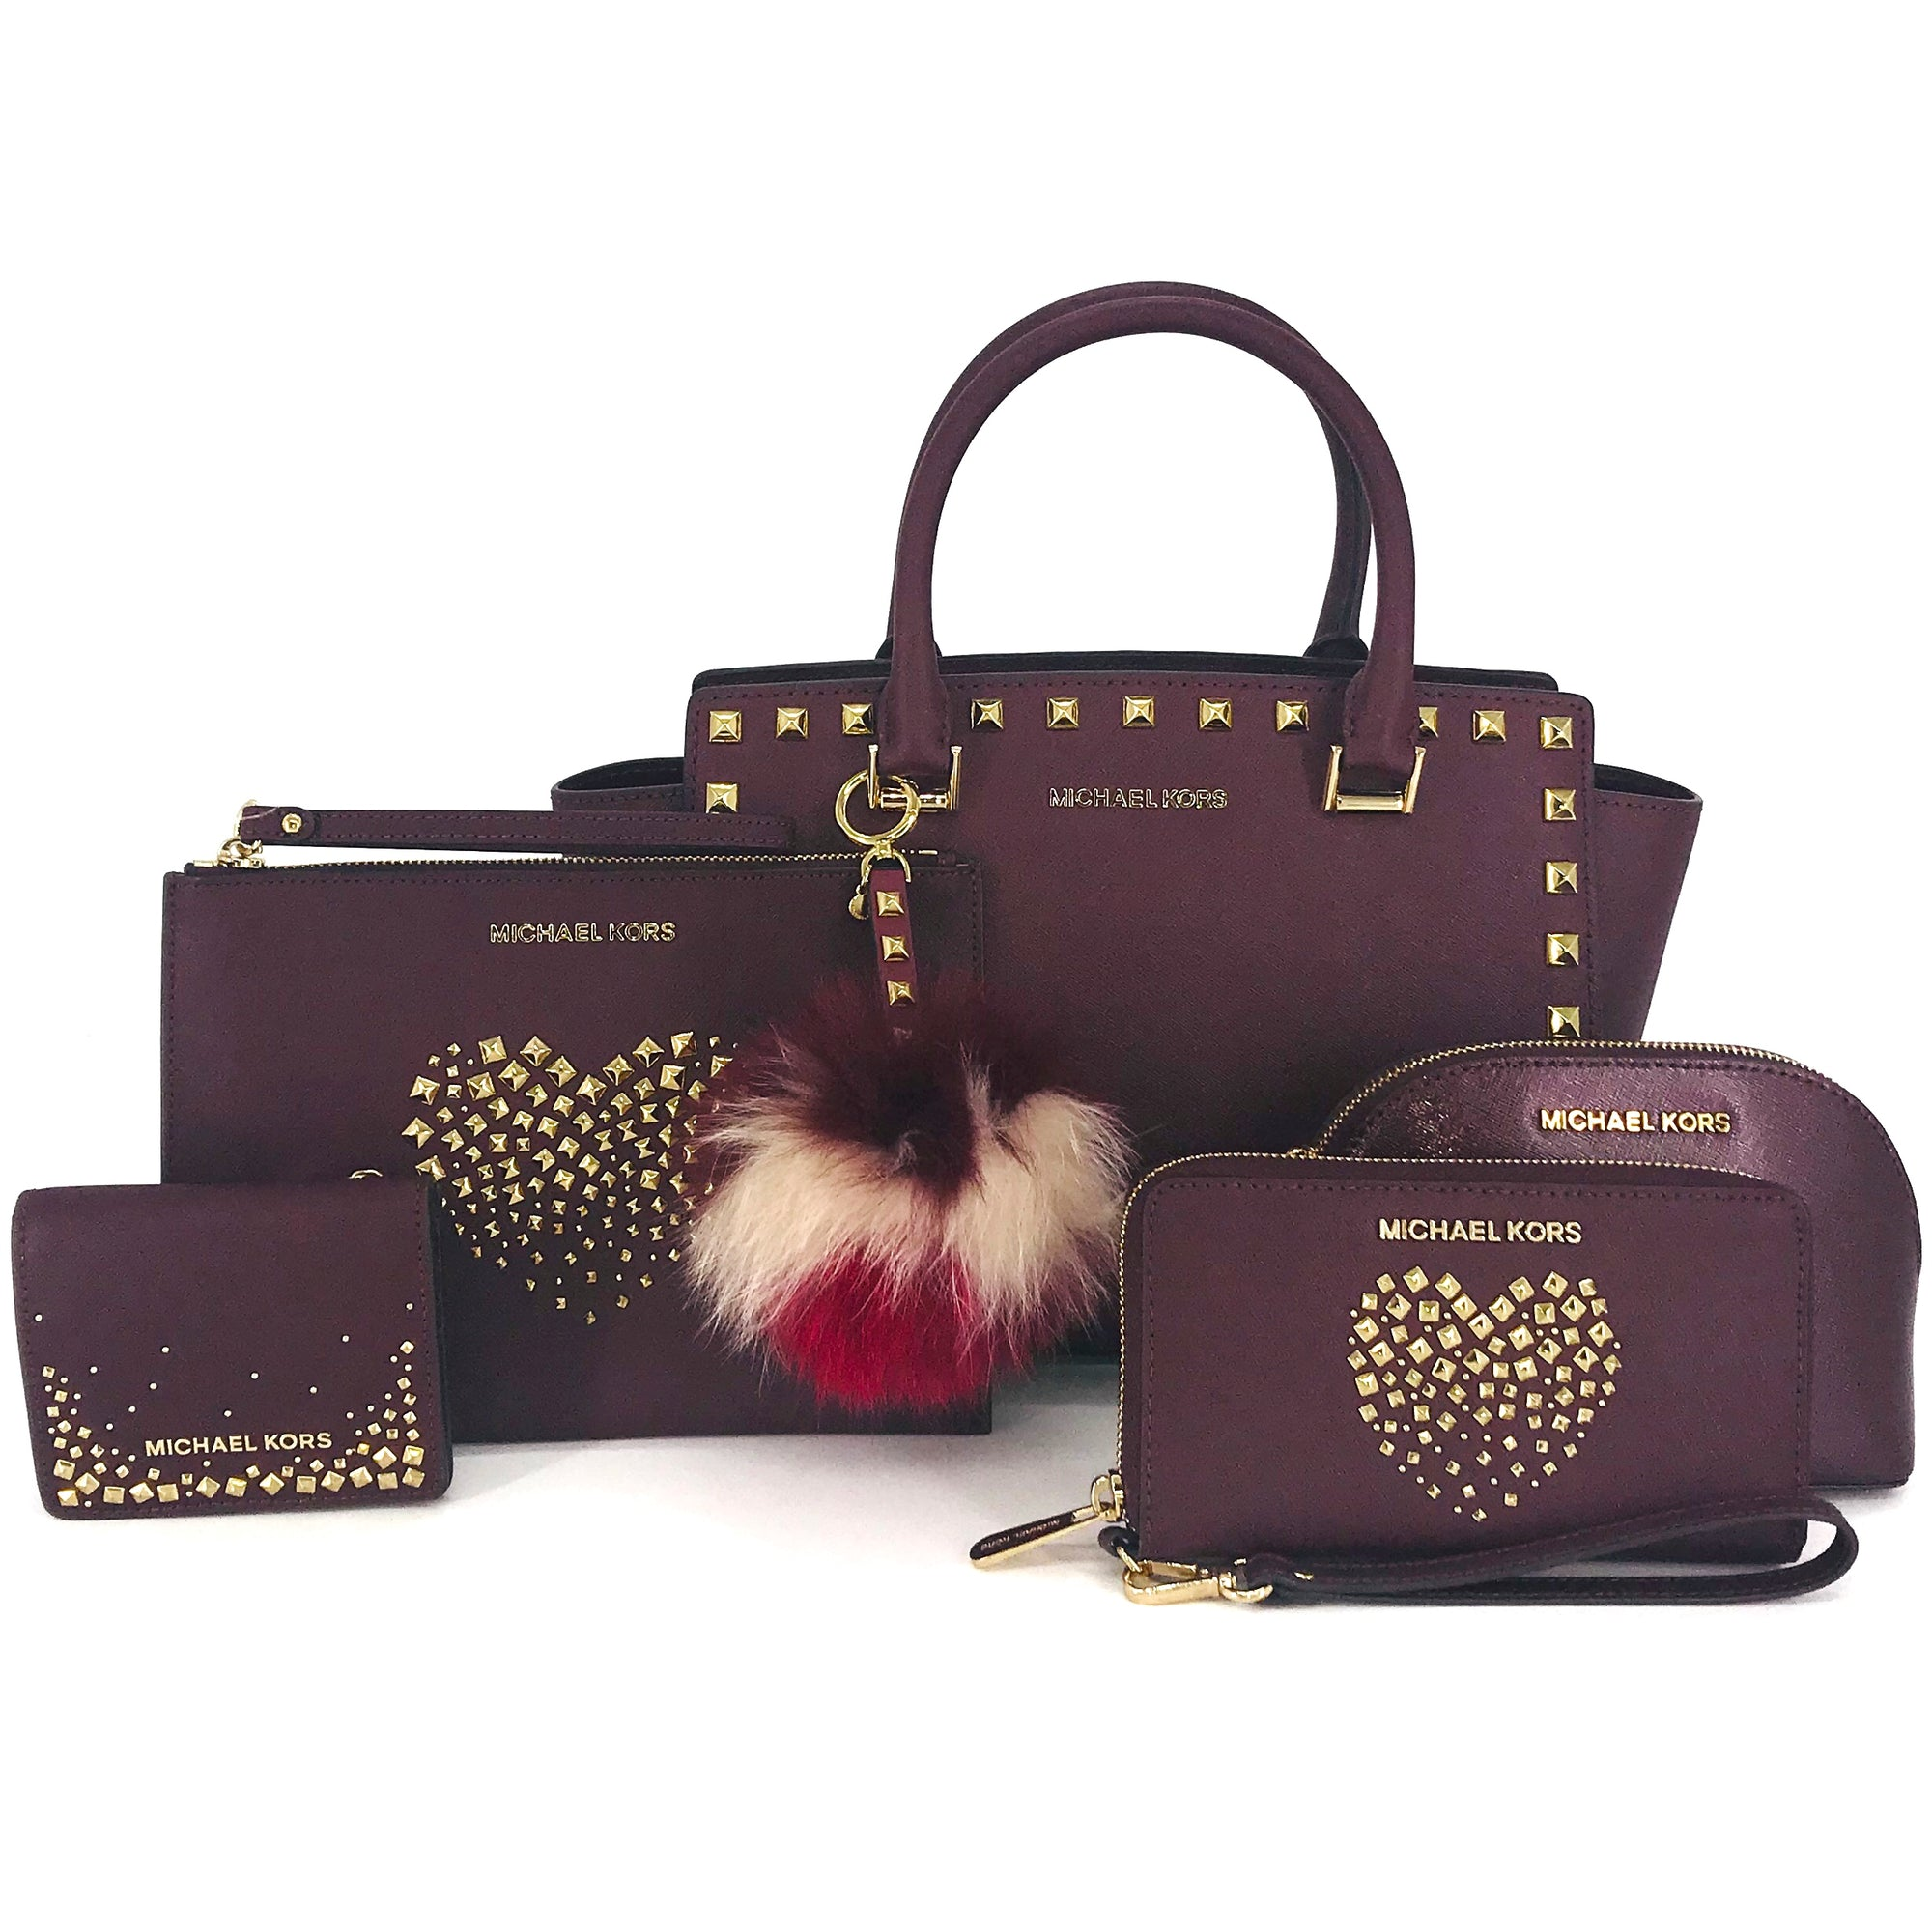 6PCS Michael Kors Merlot Love Studded Collection